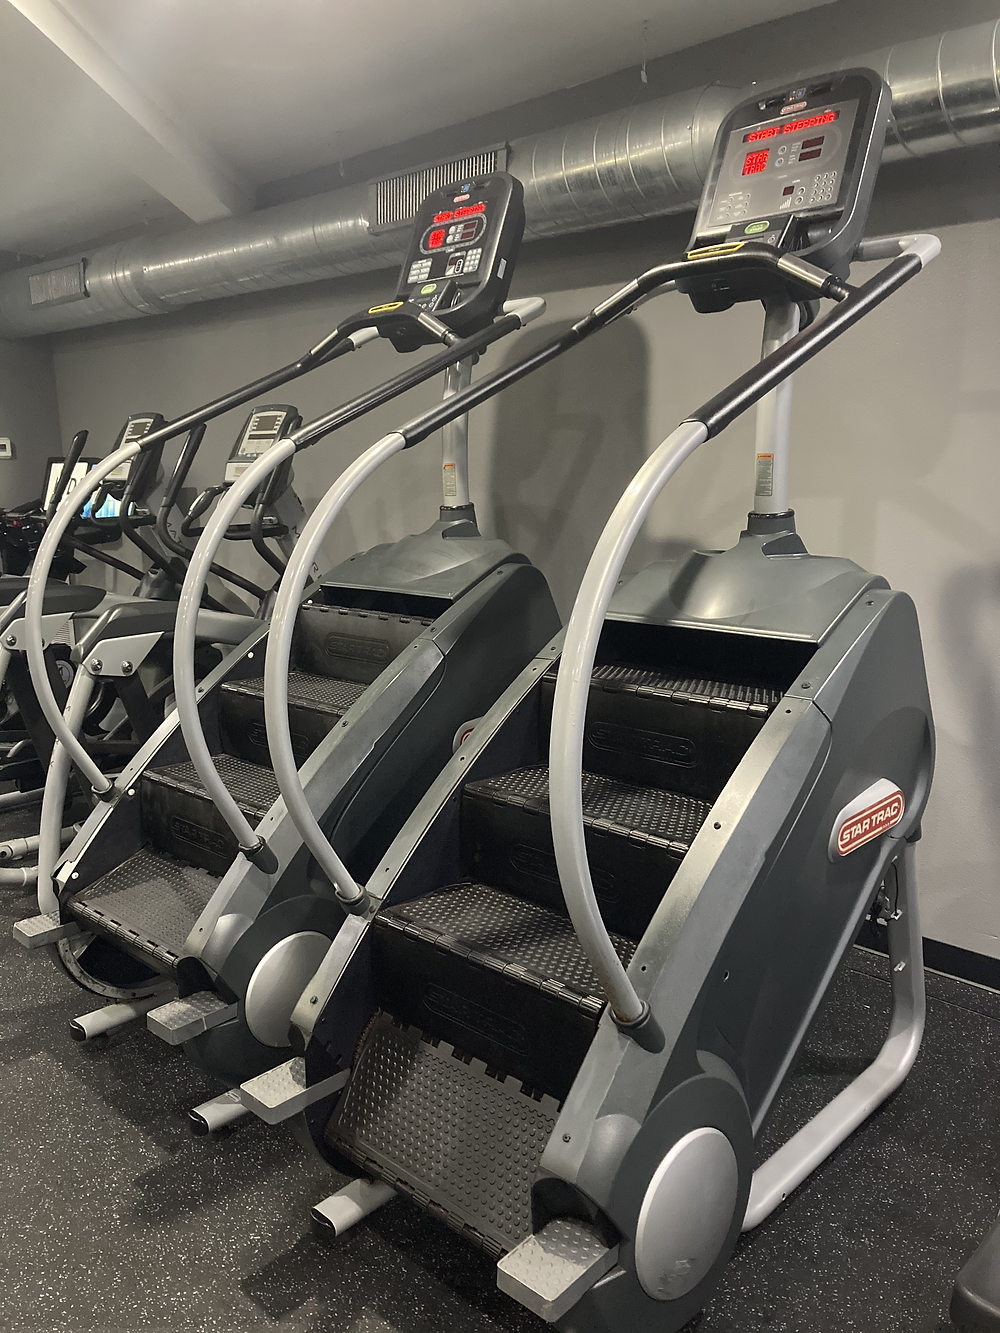 Image of stair master, a cardio equipment found in the Forge 24/7 gym in South Tampa